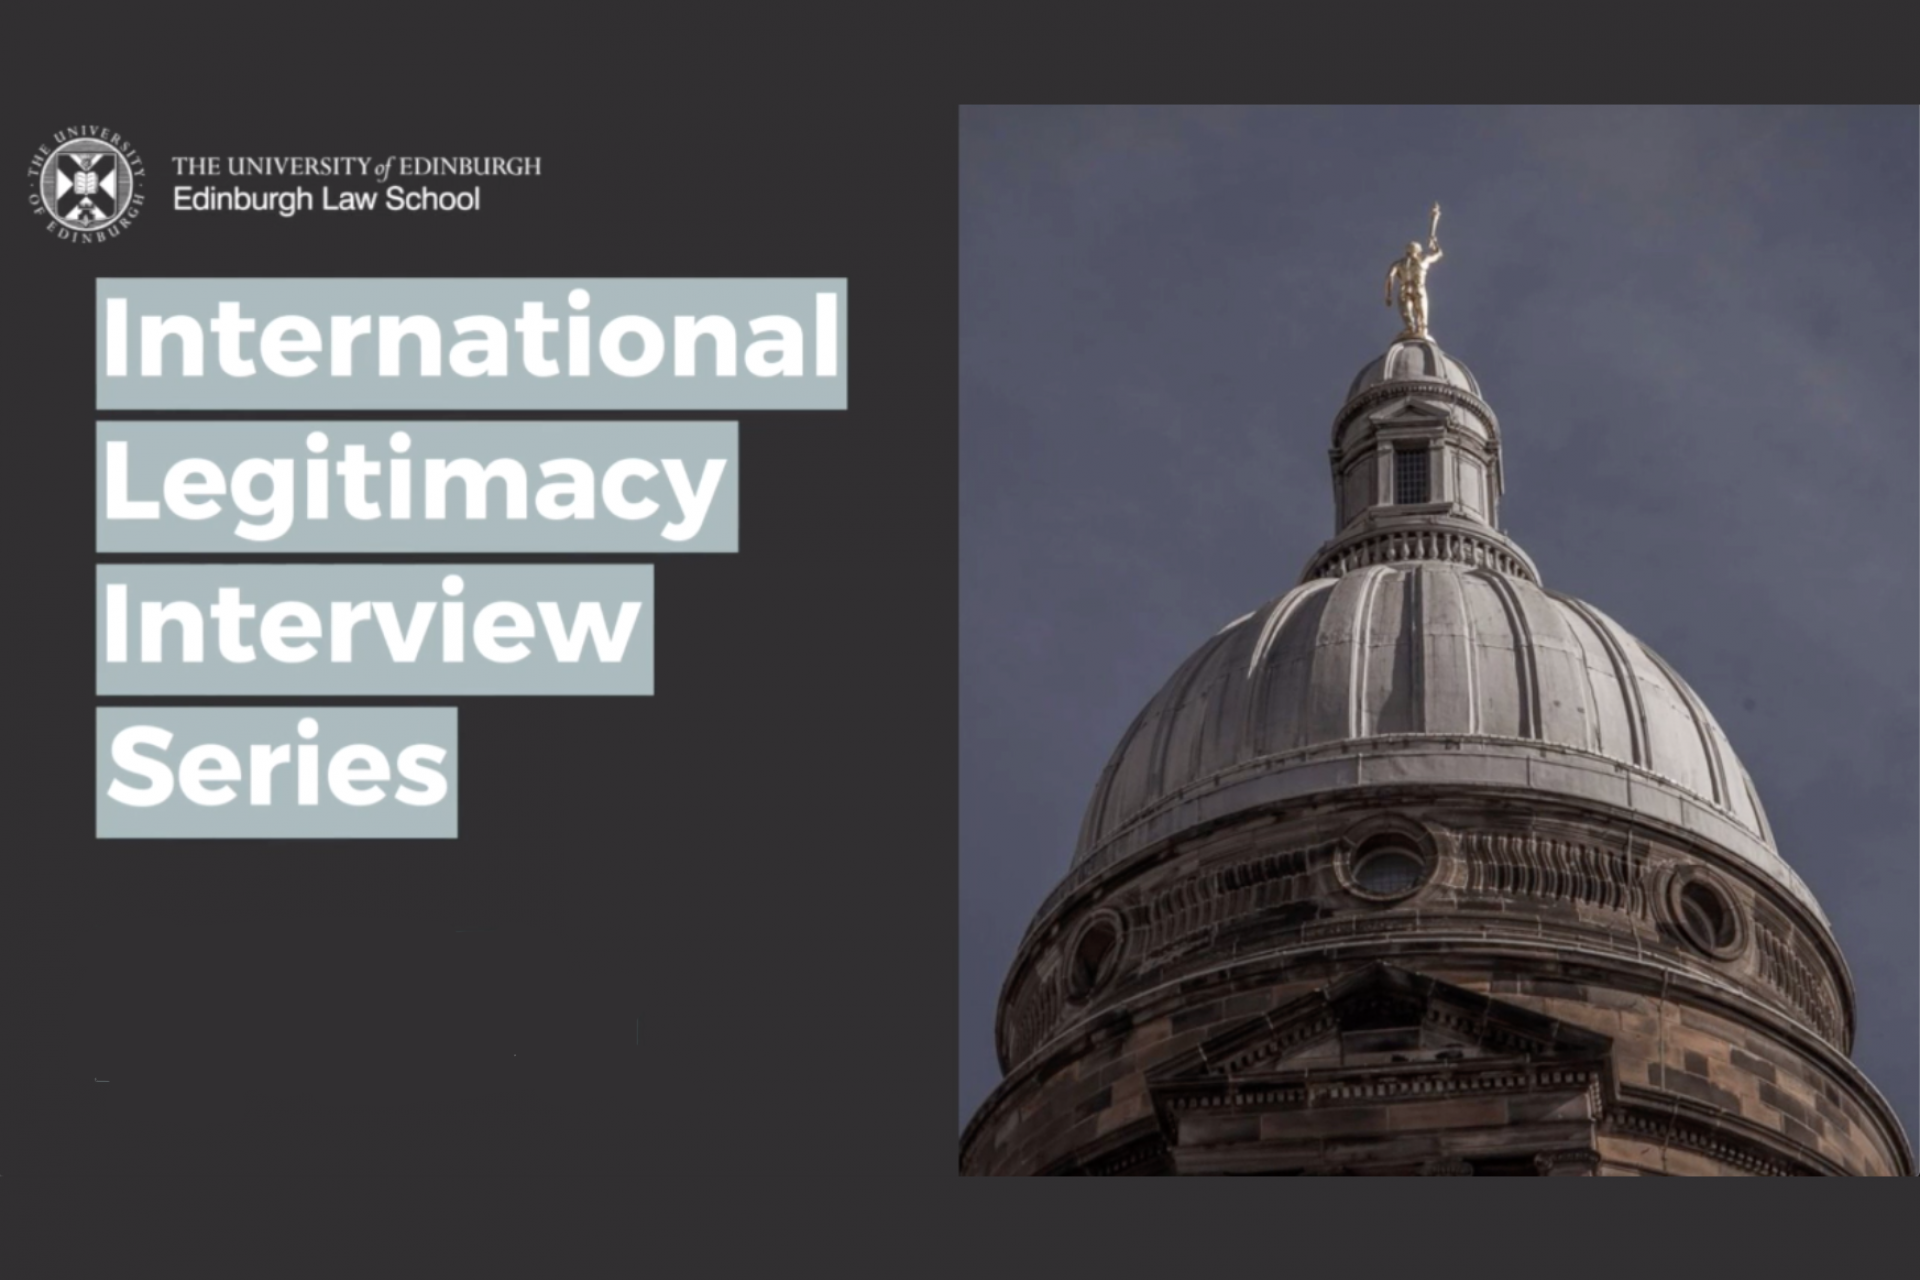 International Legitimacy Interview Series